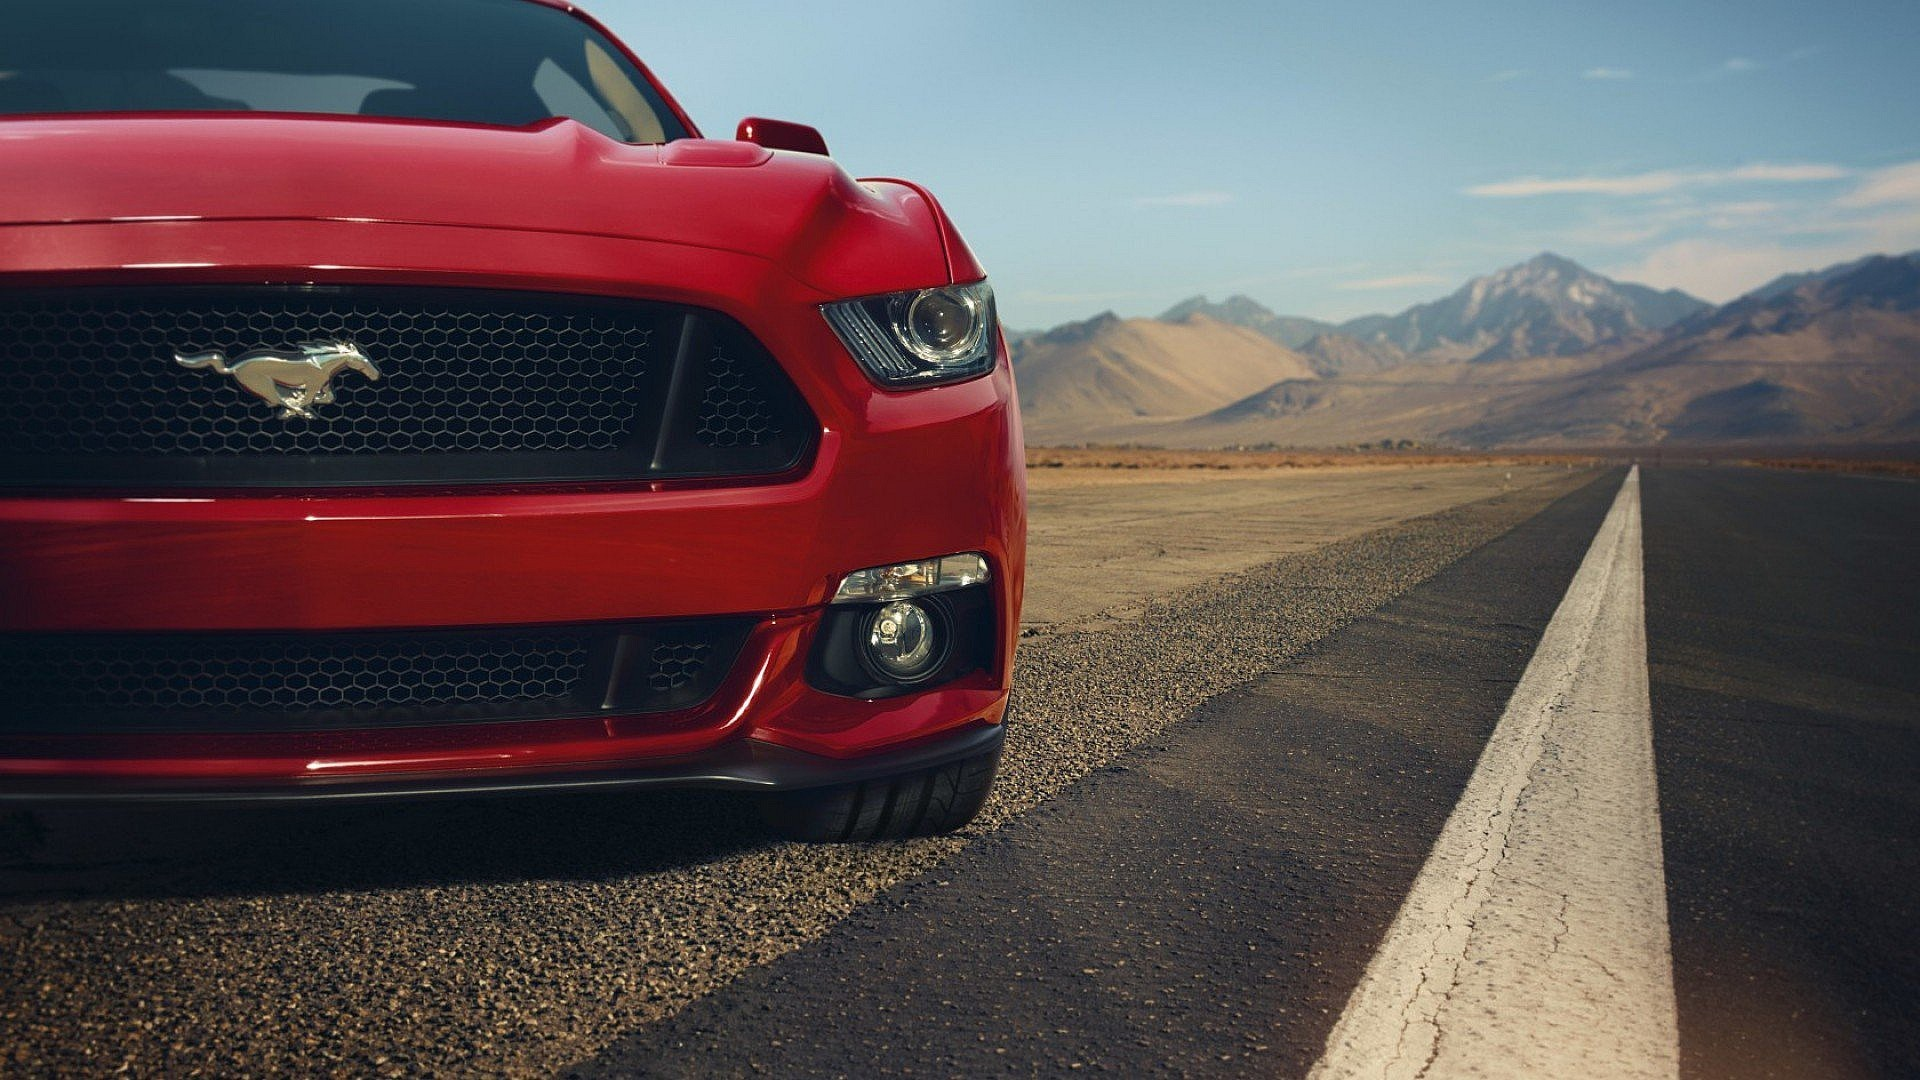 Res: 1920x1080, Ford Mustang Gt Rot Front Muscle Auto Autos Hd 4k Tapeten 3d Wallpaper